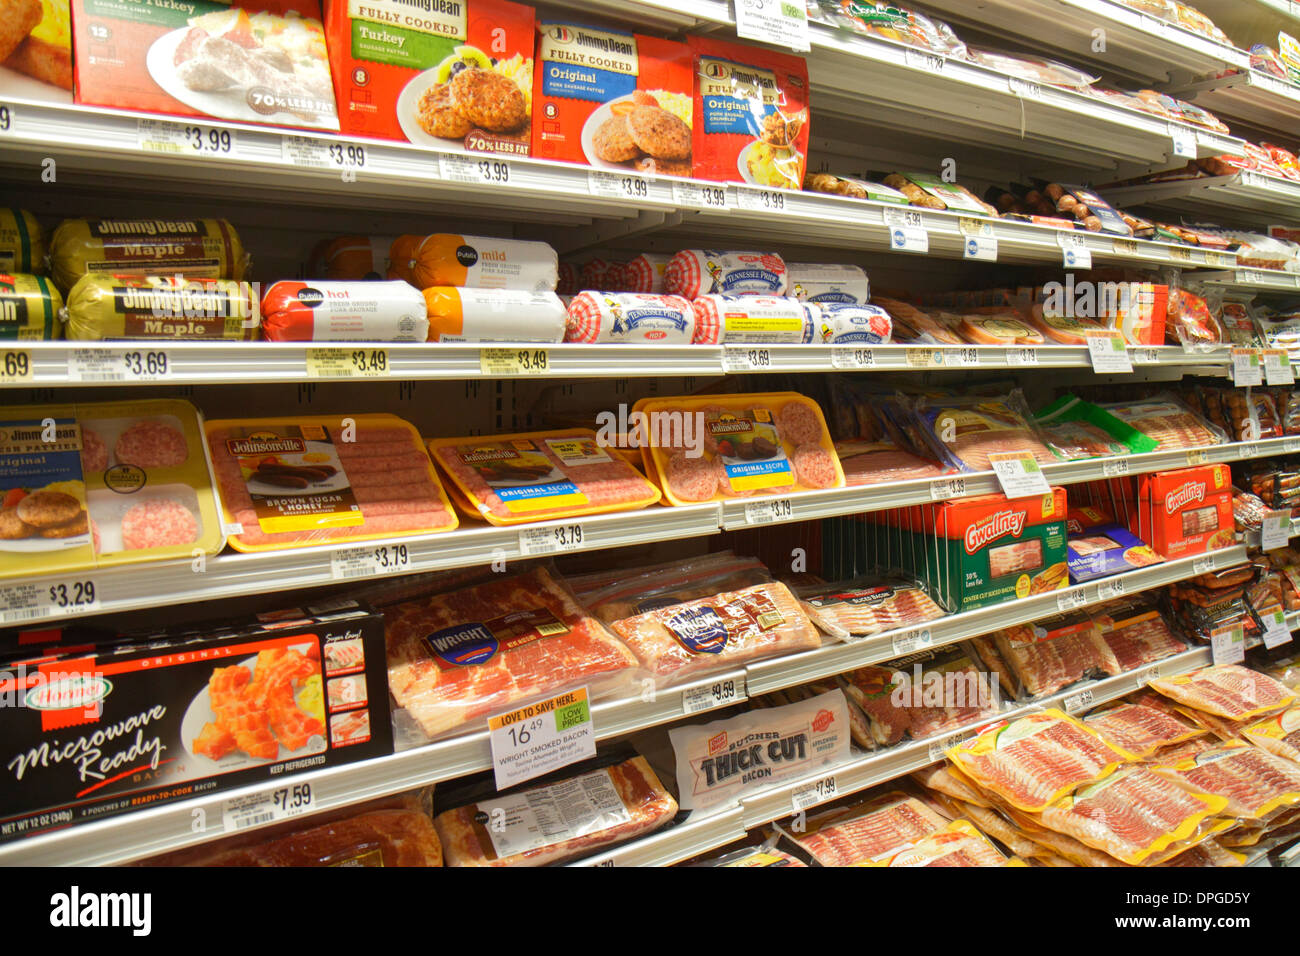 Miami Homestead Florida Publix grocery store supermarket food shopping retail display sale packaging meats sausages bacon - Stock Image